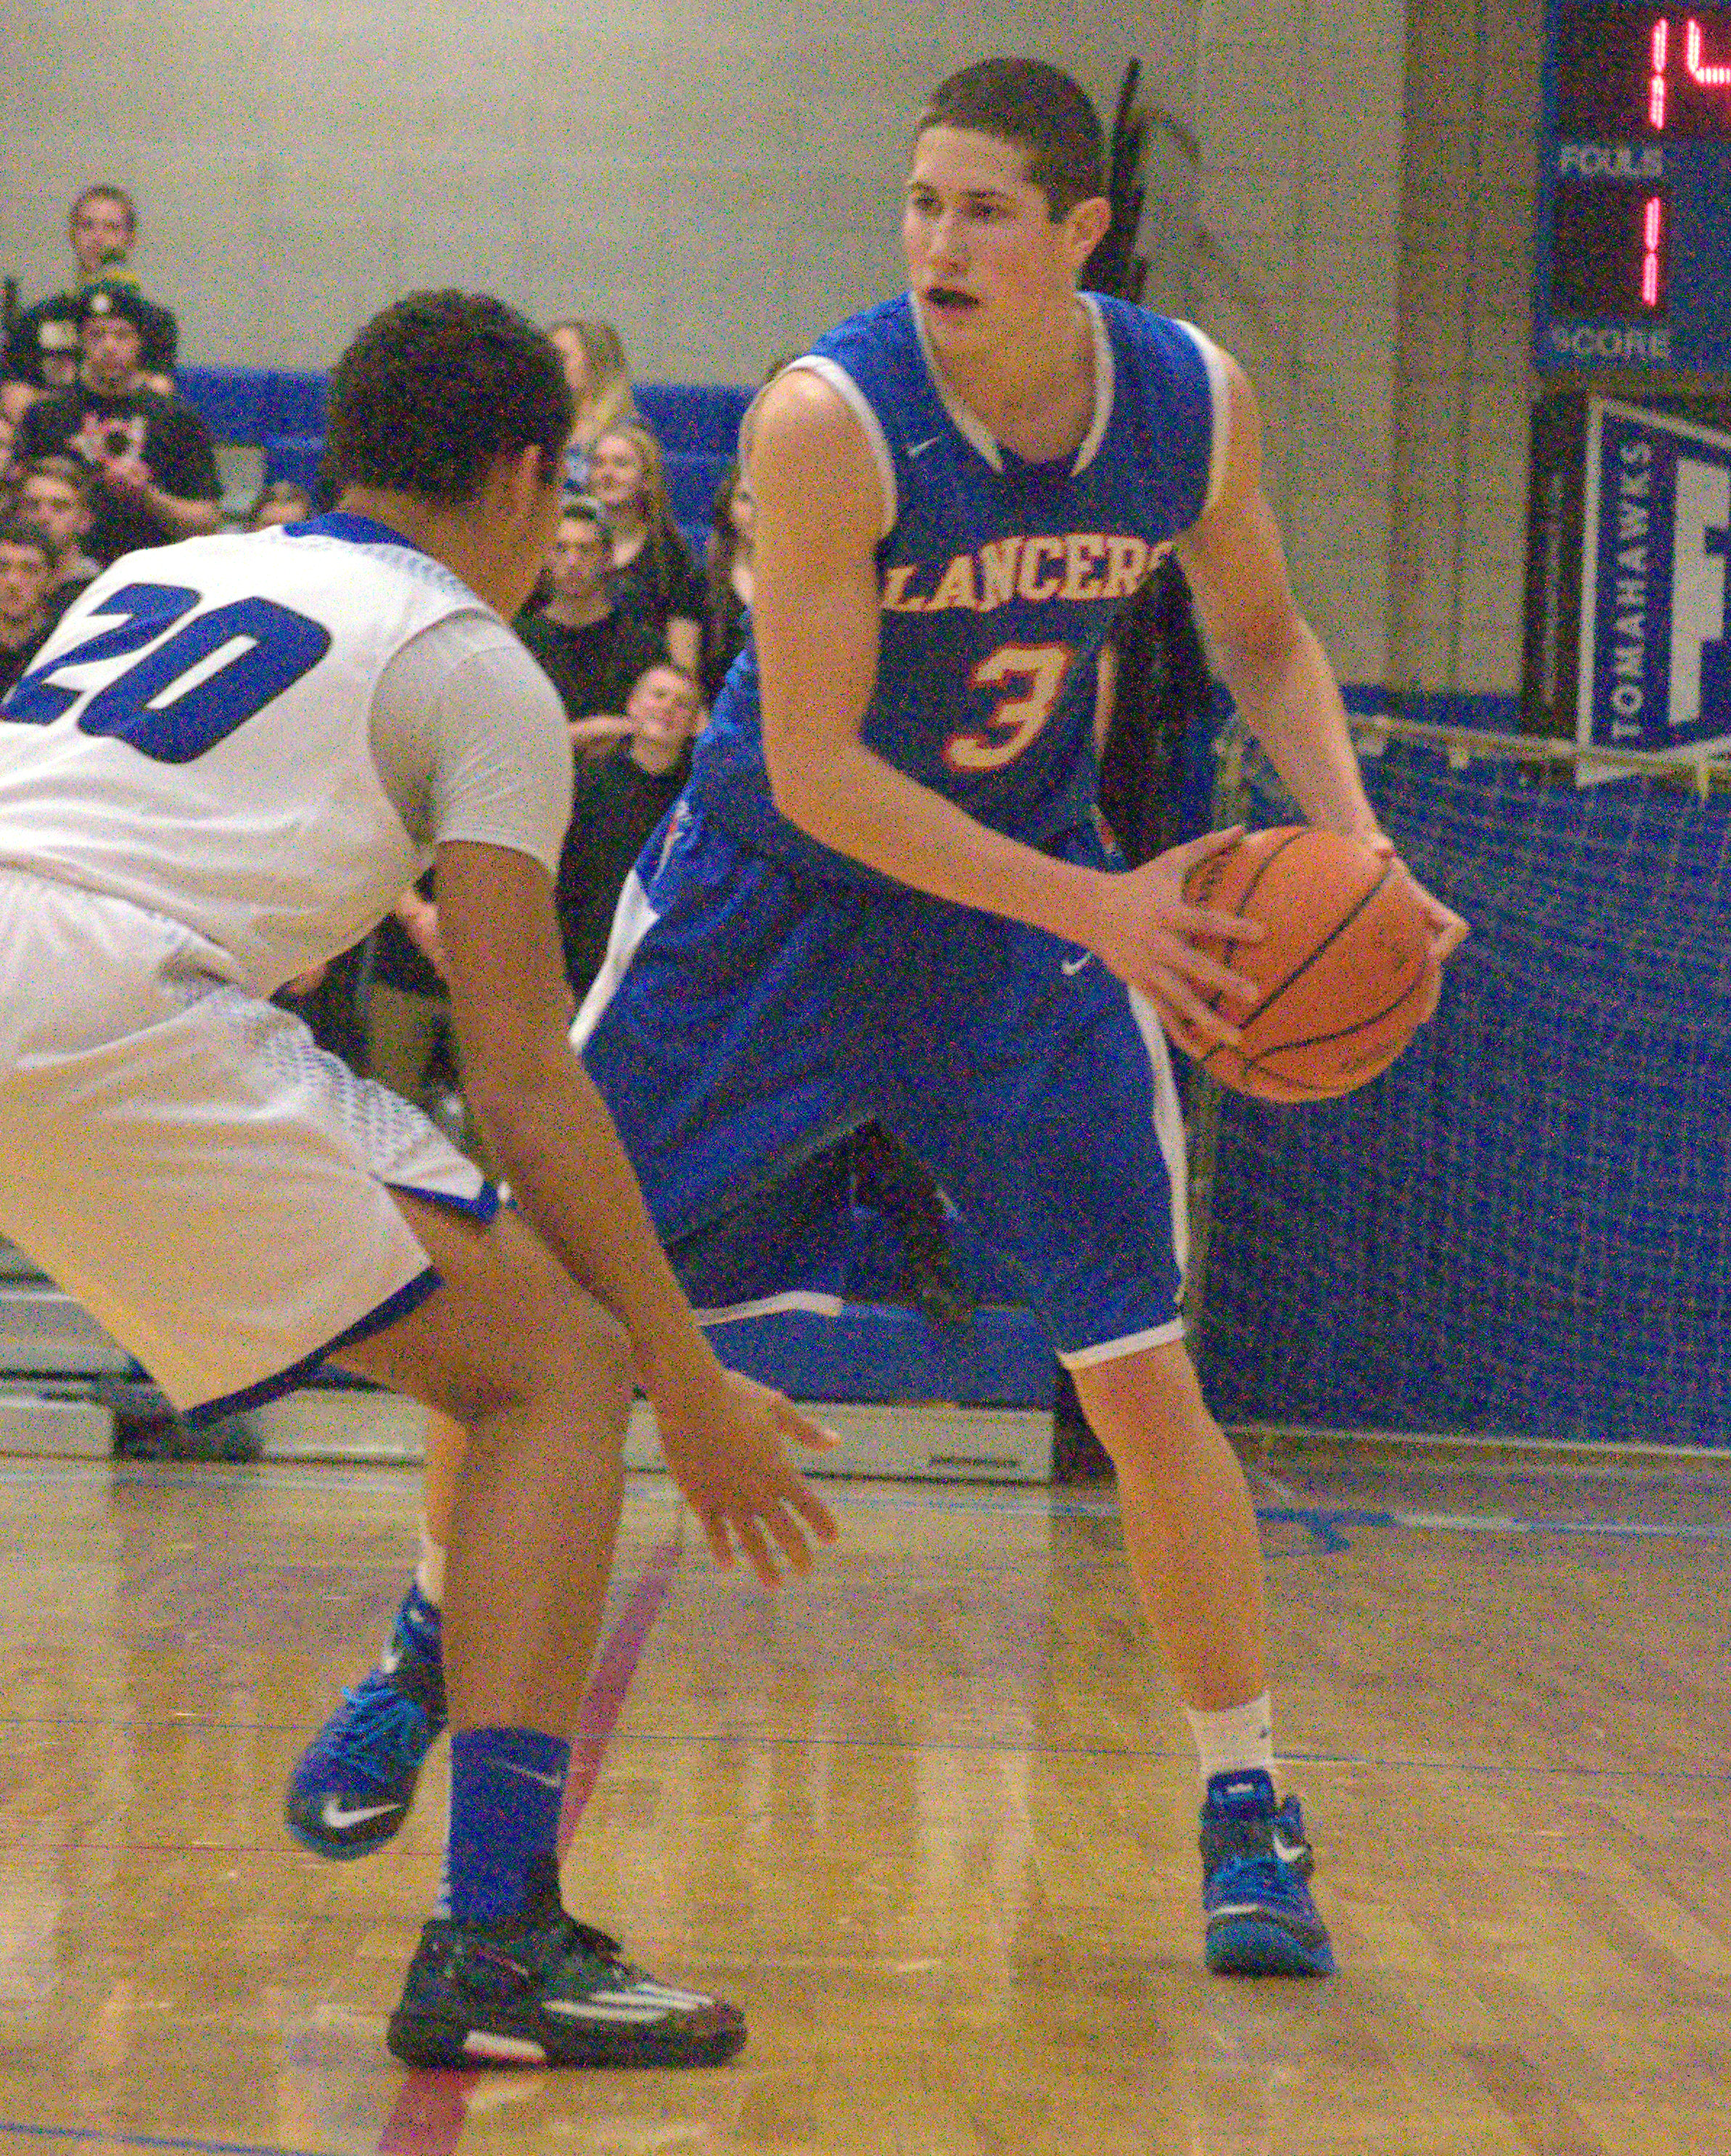 Londonderry's Cody Ball is the 2015 King of New Hampshire High School Basketball.